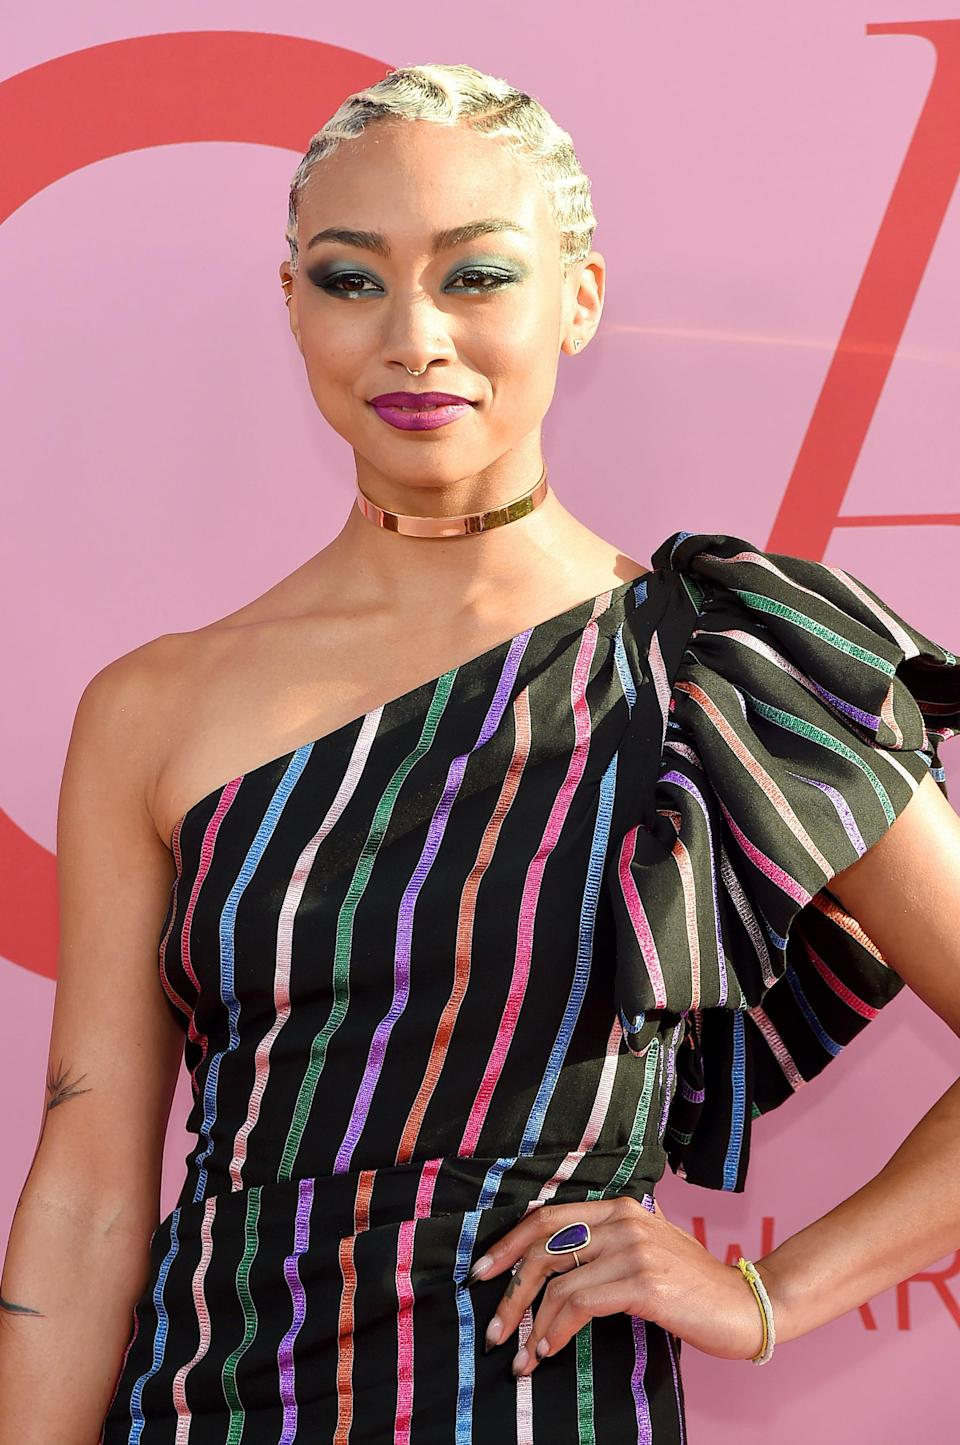 <p>In addition to acting, Tati wants to expand her horizons by writing, producing, and directing. She also wants to get into the music business and explore disc jockeying. </p>